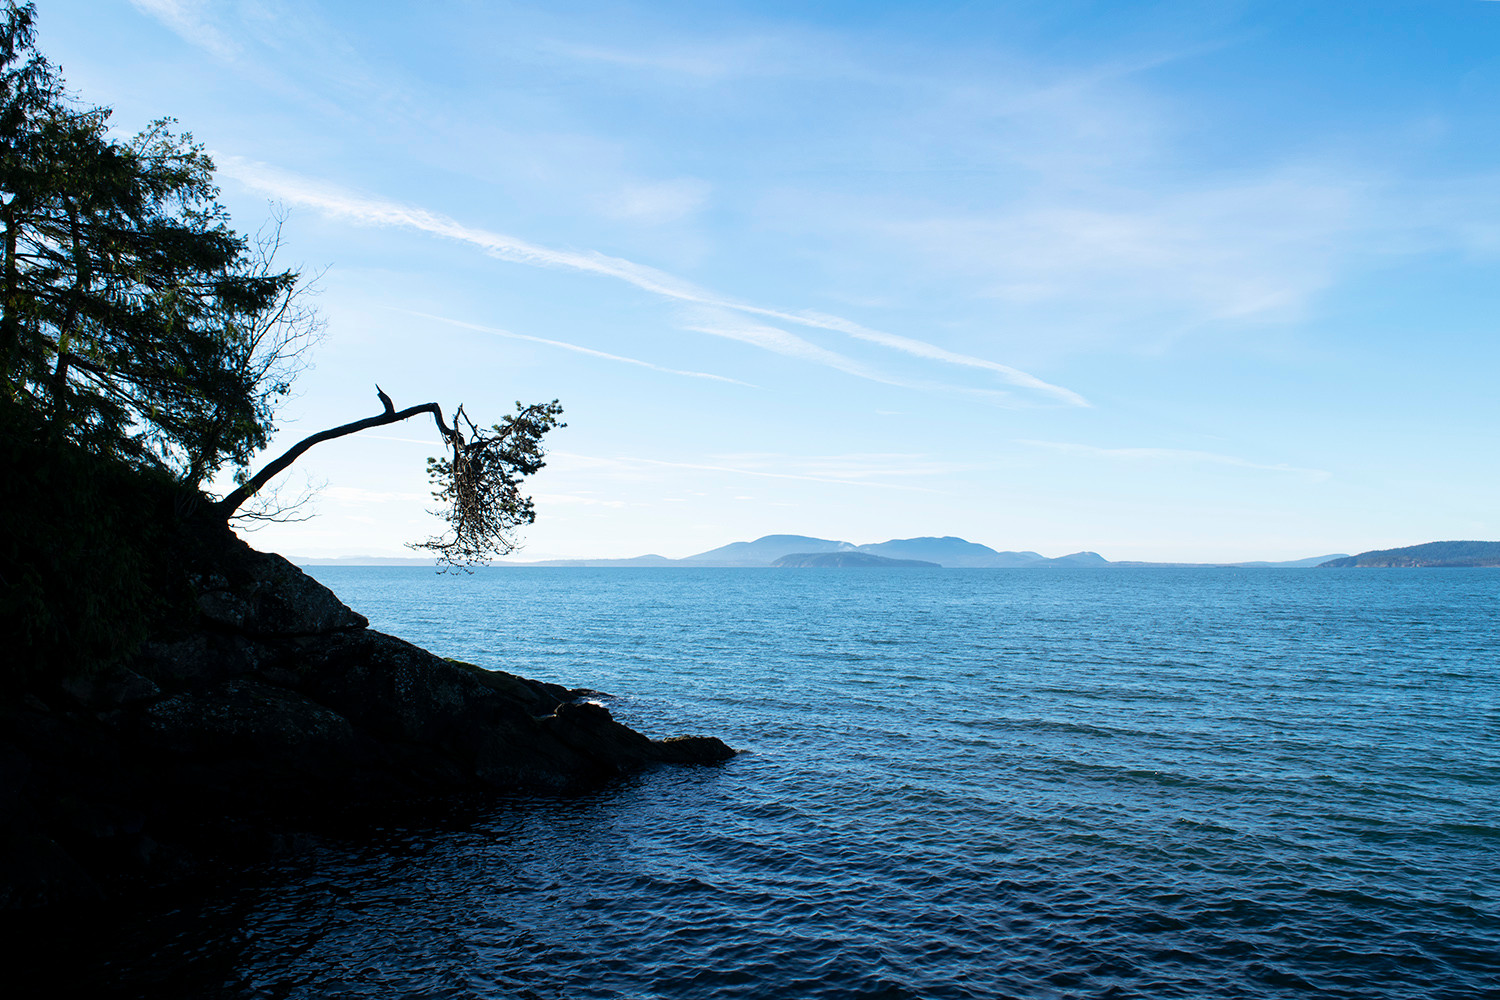 The horizons of Bellingham Bay as seen from Larrabee State Park. Bellingham, WA. 2018.